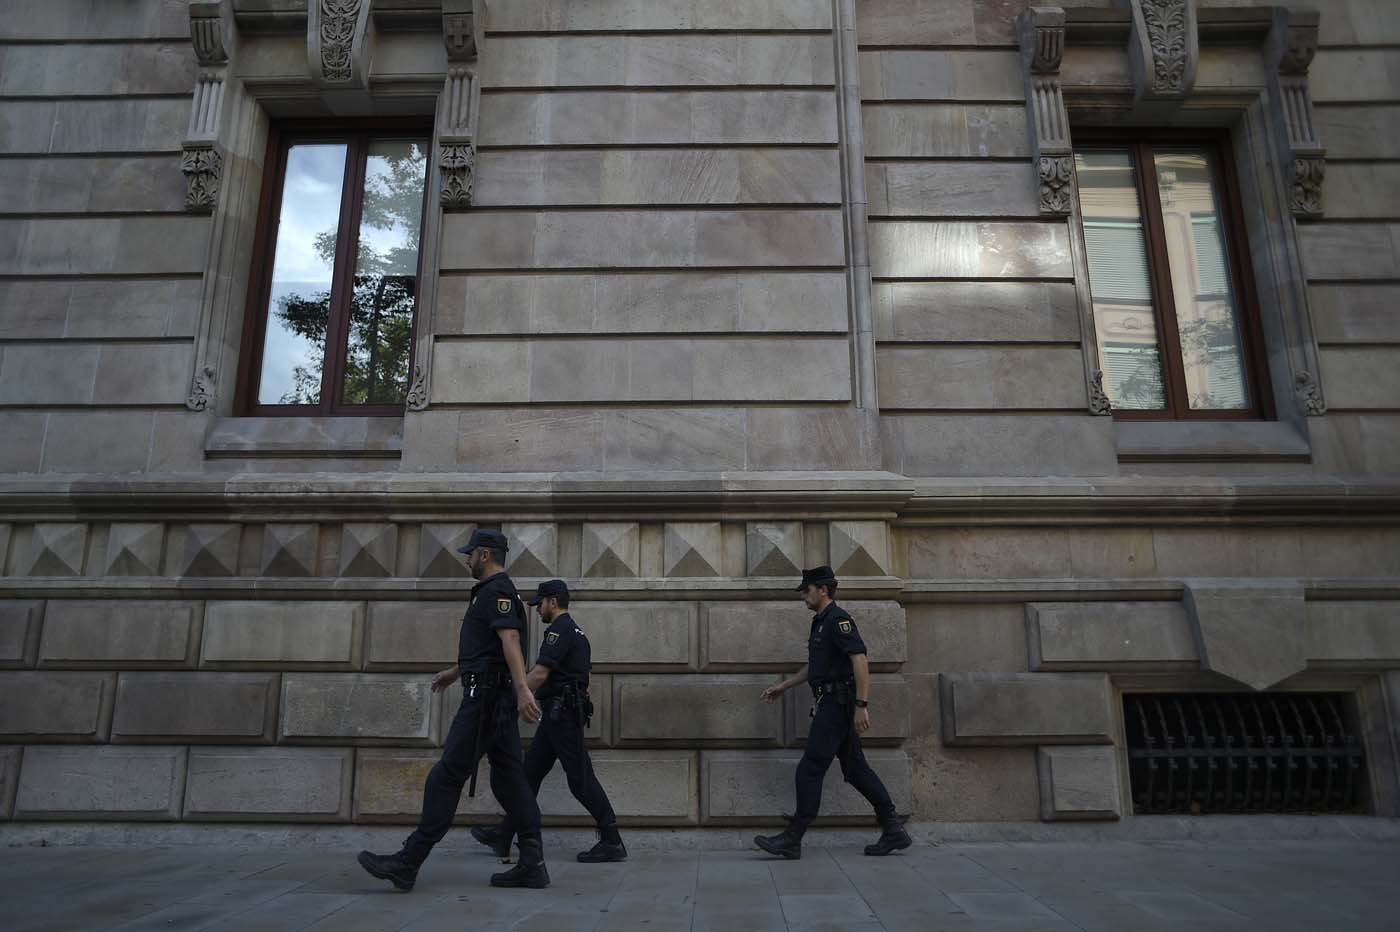 Police officers patrol outside the High Court of Catalonia in Barcelona on October 10, 2017. Spain's worst political crisis in a generation will come to a head as Catalonia's leader could declare independence from Madrid in a move likely to send shockwaves through Europe. / AFP PHOTO / JORGE GUERRERO